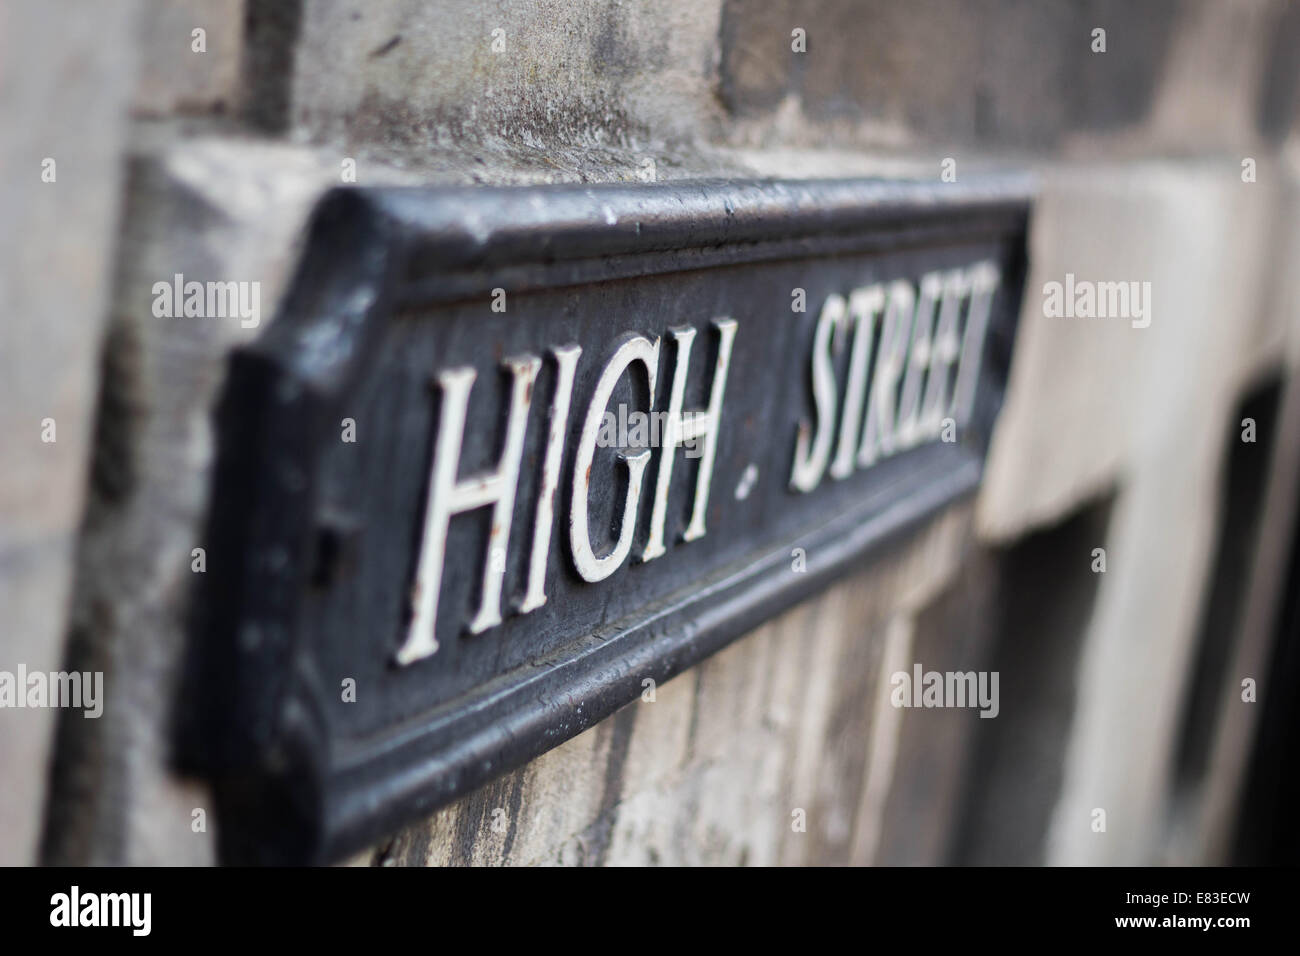 Oxford high street. - Stock Image